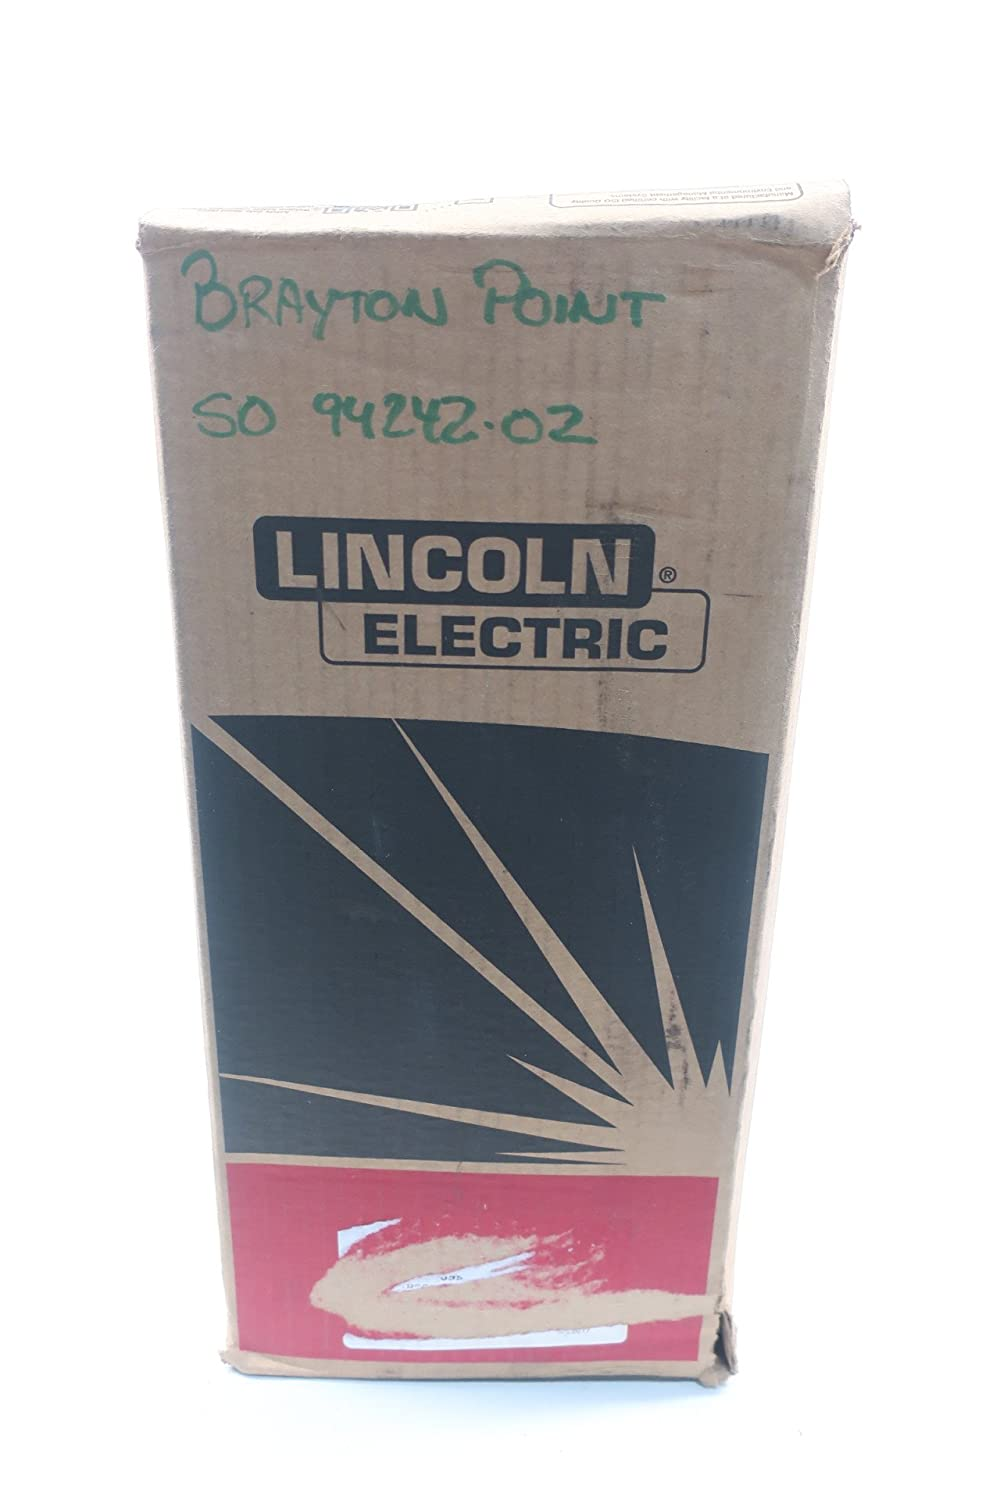 NEW LINCOLN ELECTRIC EDM13182833 MUREX B7018 MR ELECTRODE 3/32IN 50LB D609708: Amazon.com: Industrial & Scientific